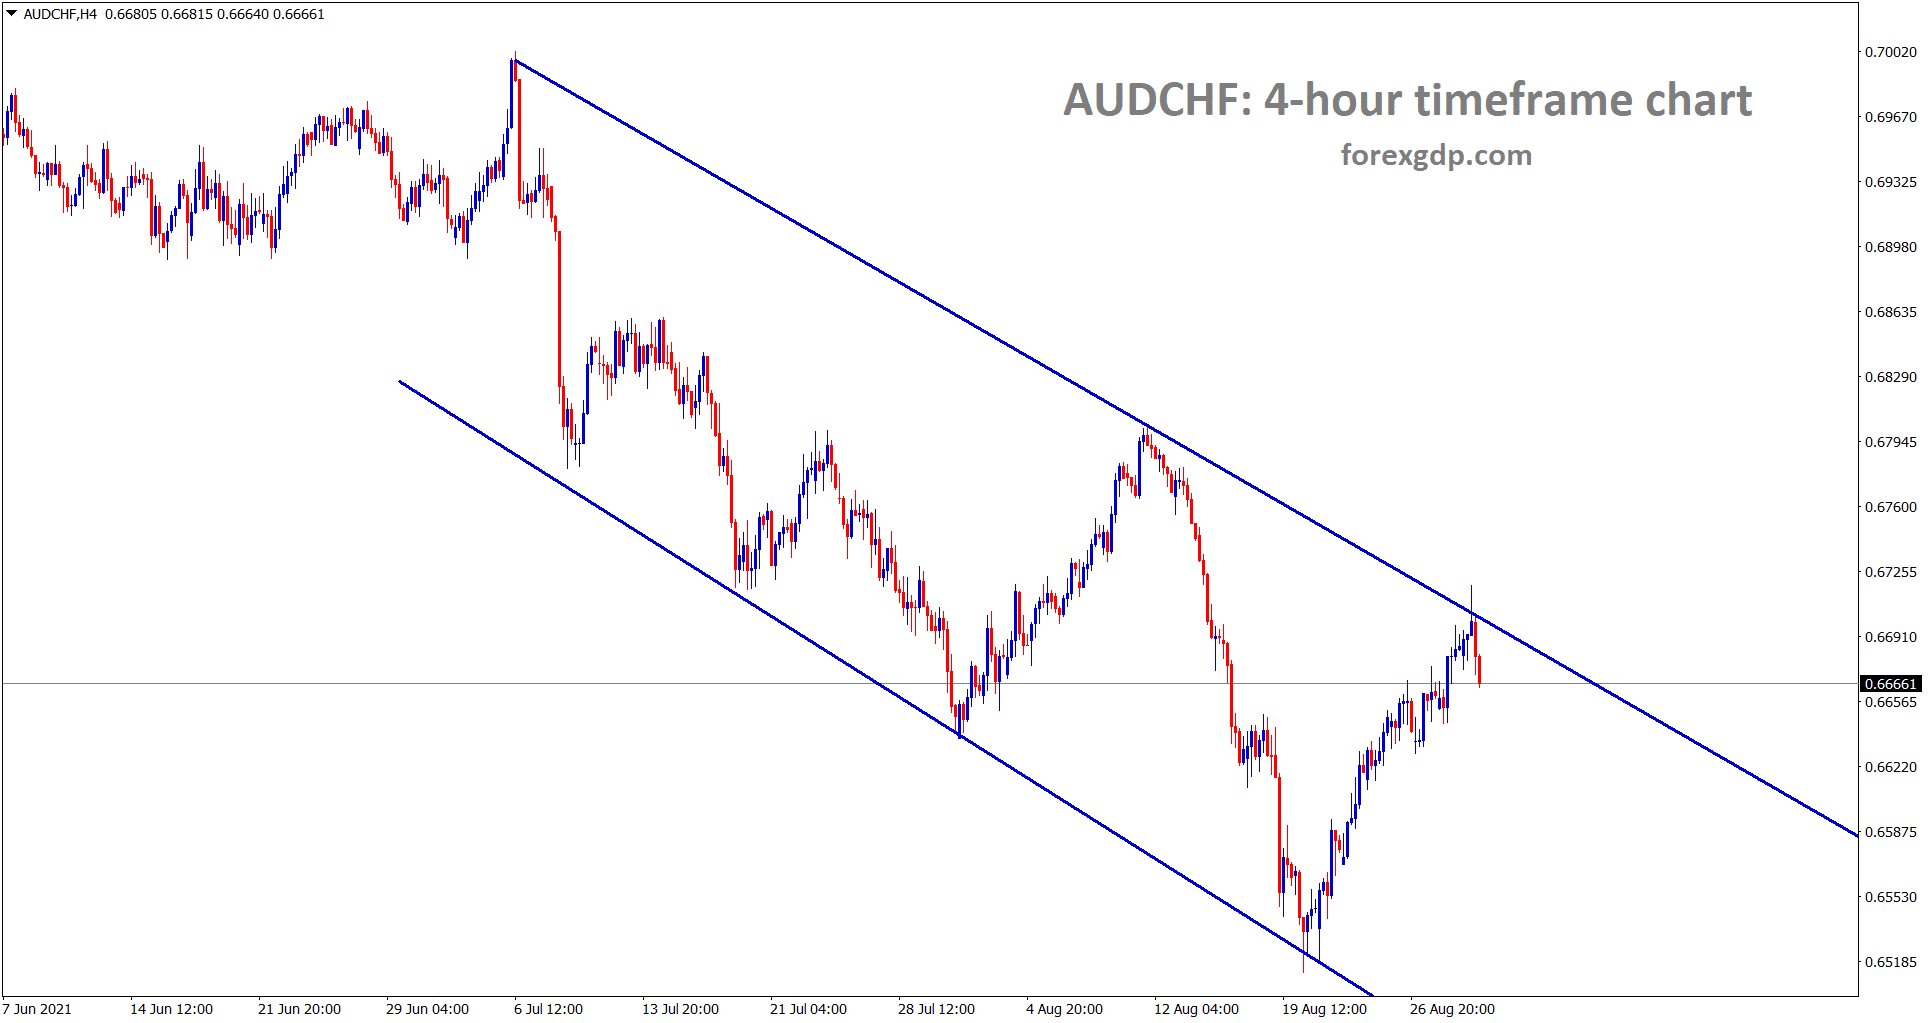 AUDCHF is making some correction from the lower high of the descending channel wait for the confirmation of breakout or reversal